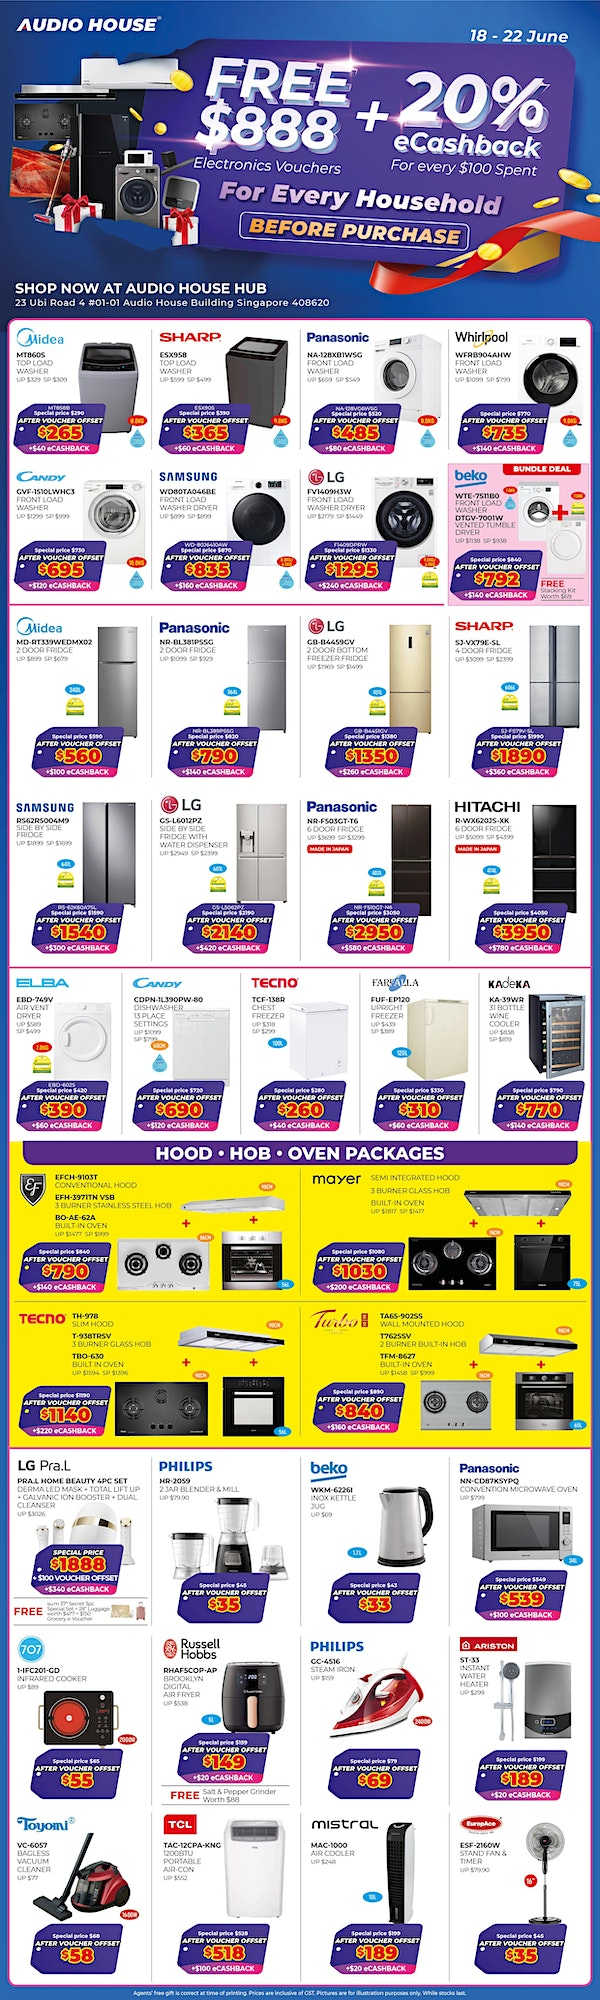 Audio House FREE $888 Vouchers Giveaway image